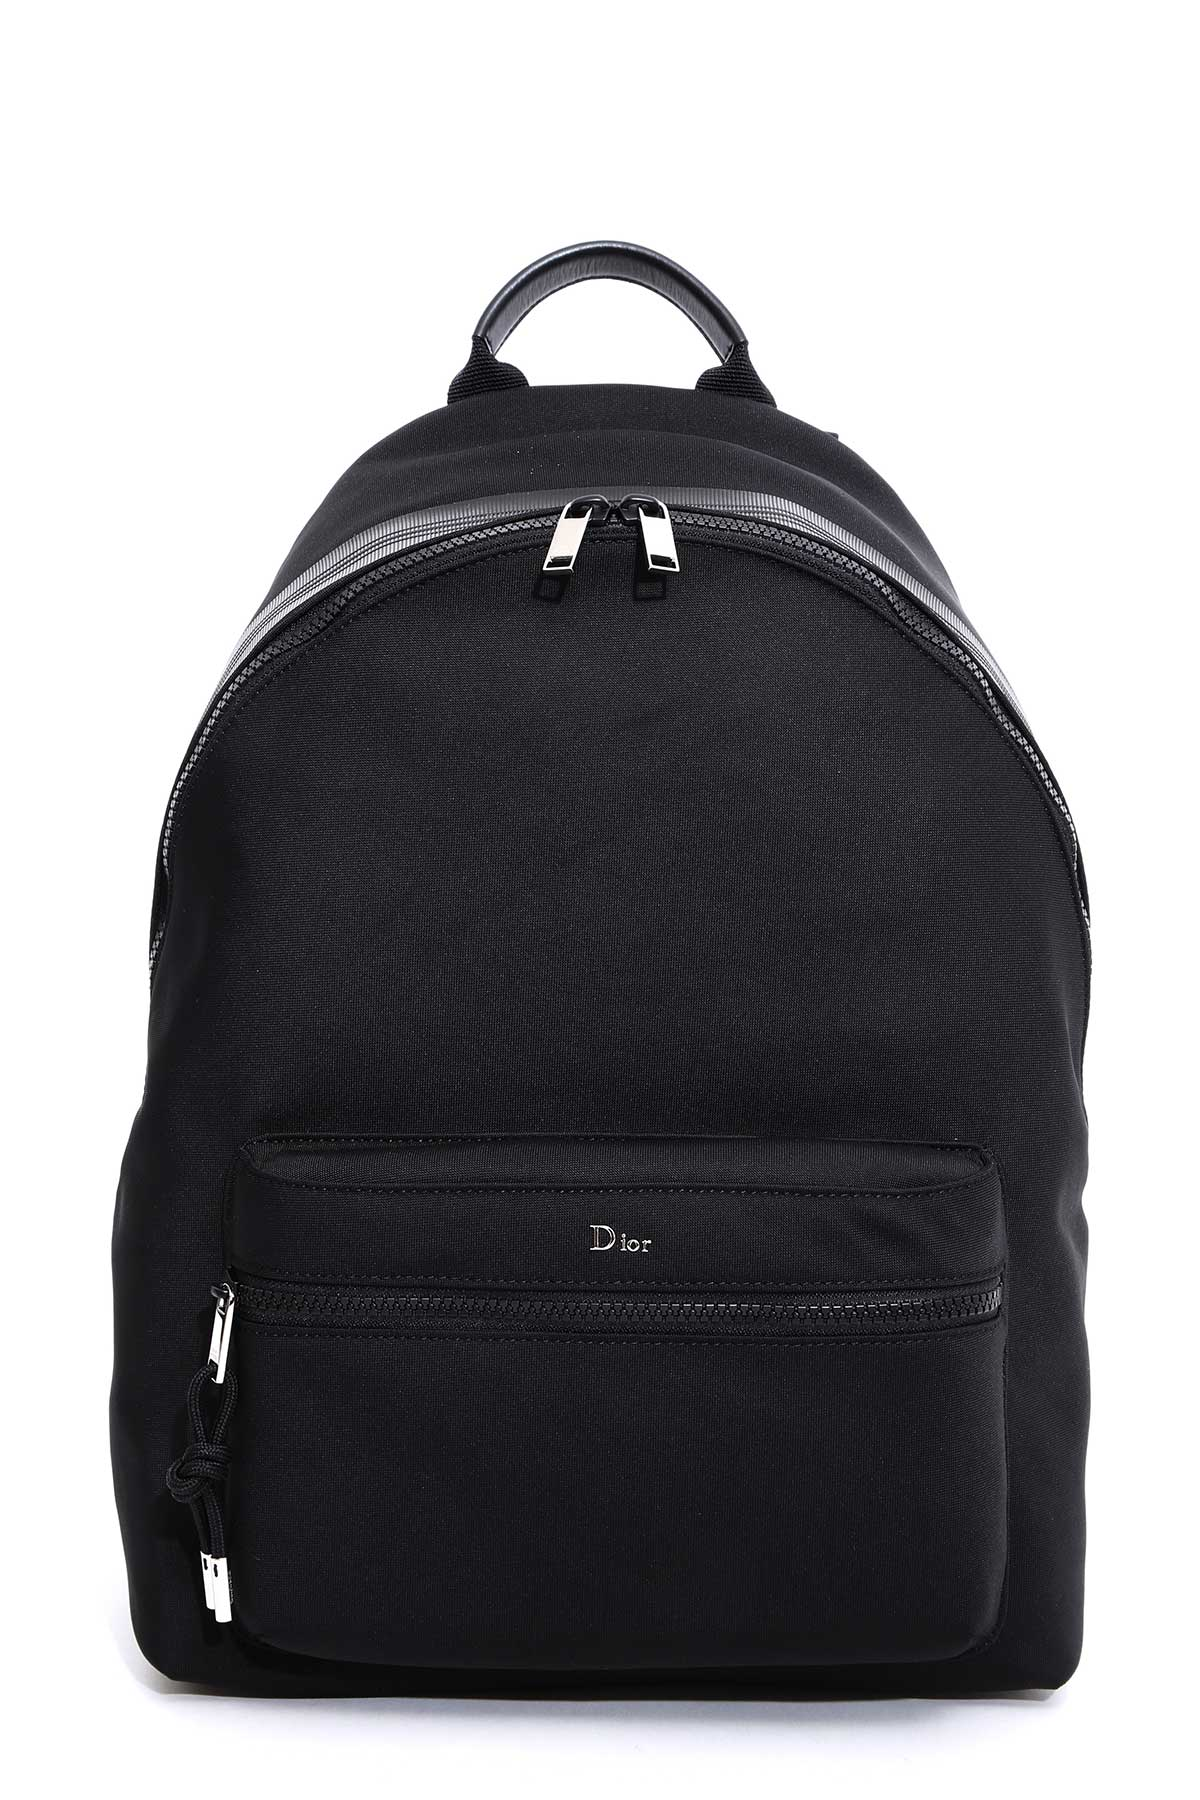 DIOR HOMME PALACE MARIANI CANVAS BACKPACK